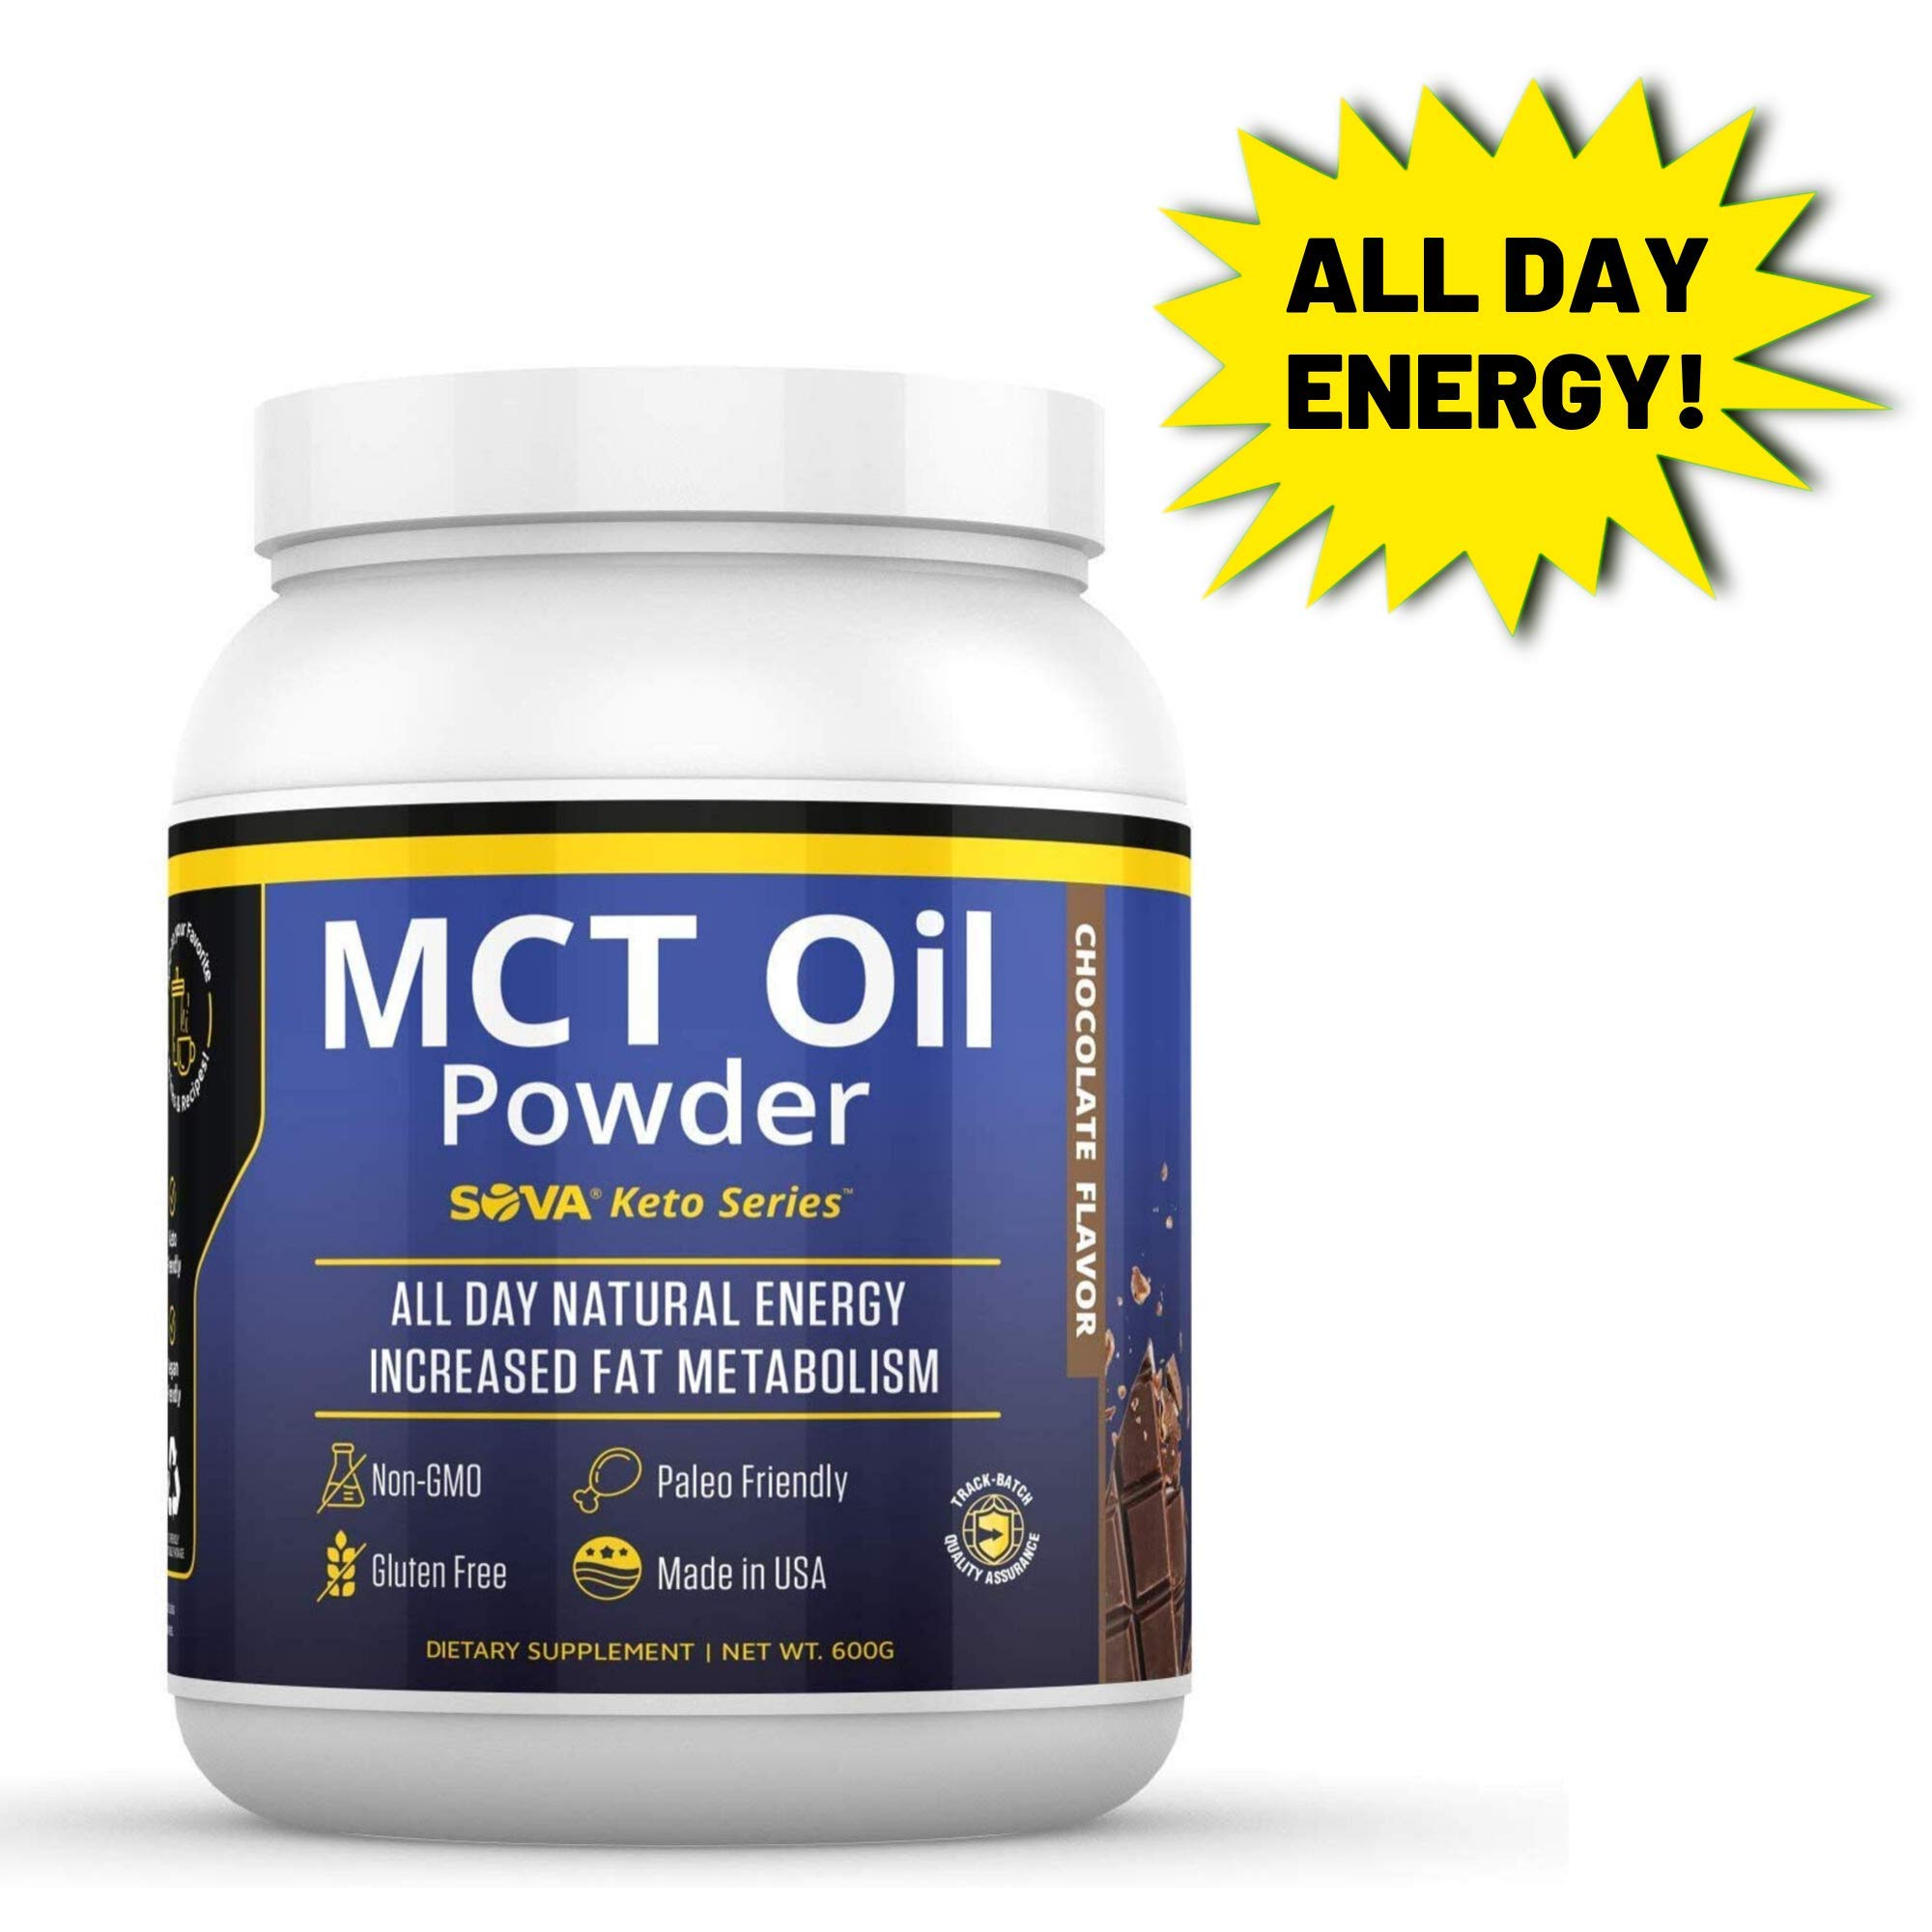 SOVA Keto Series MCT Oil Powder All Day Natural Energy and Increased Metabolism, Paleo and Ketogenic Friendly, Dissolves Easily in Coffee, Shakes, and Smoothies, 60 Servings, Chocolate